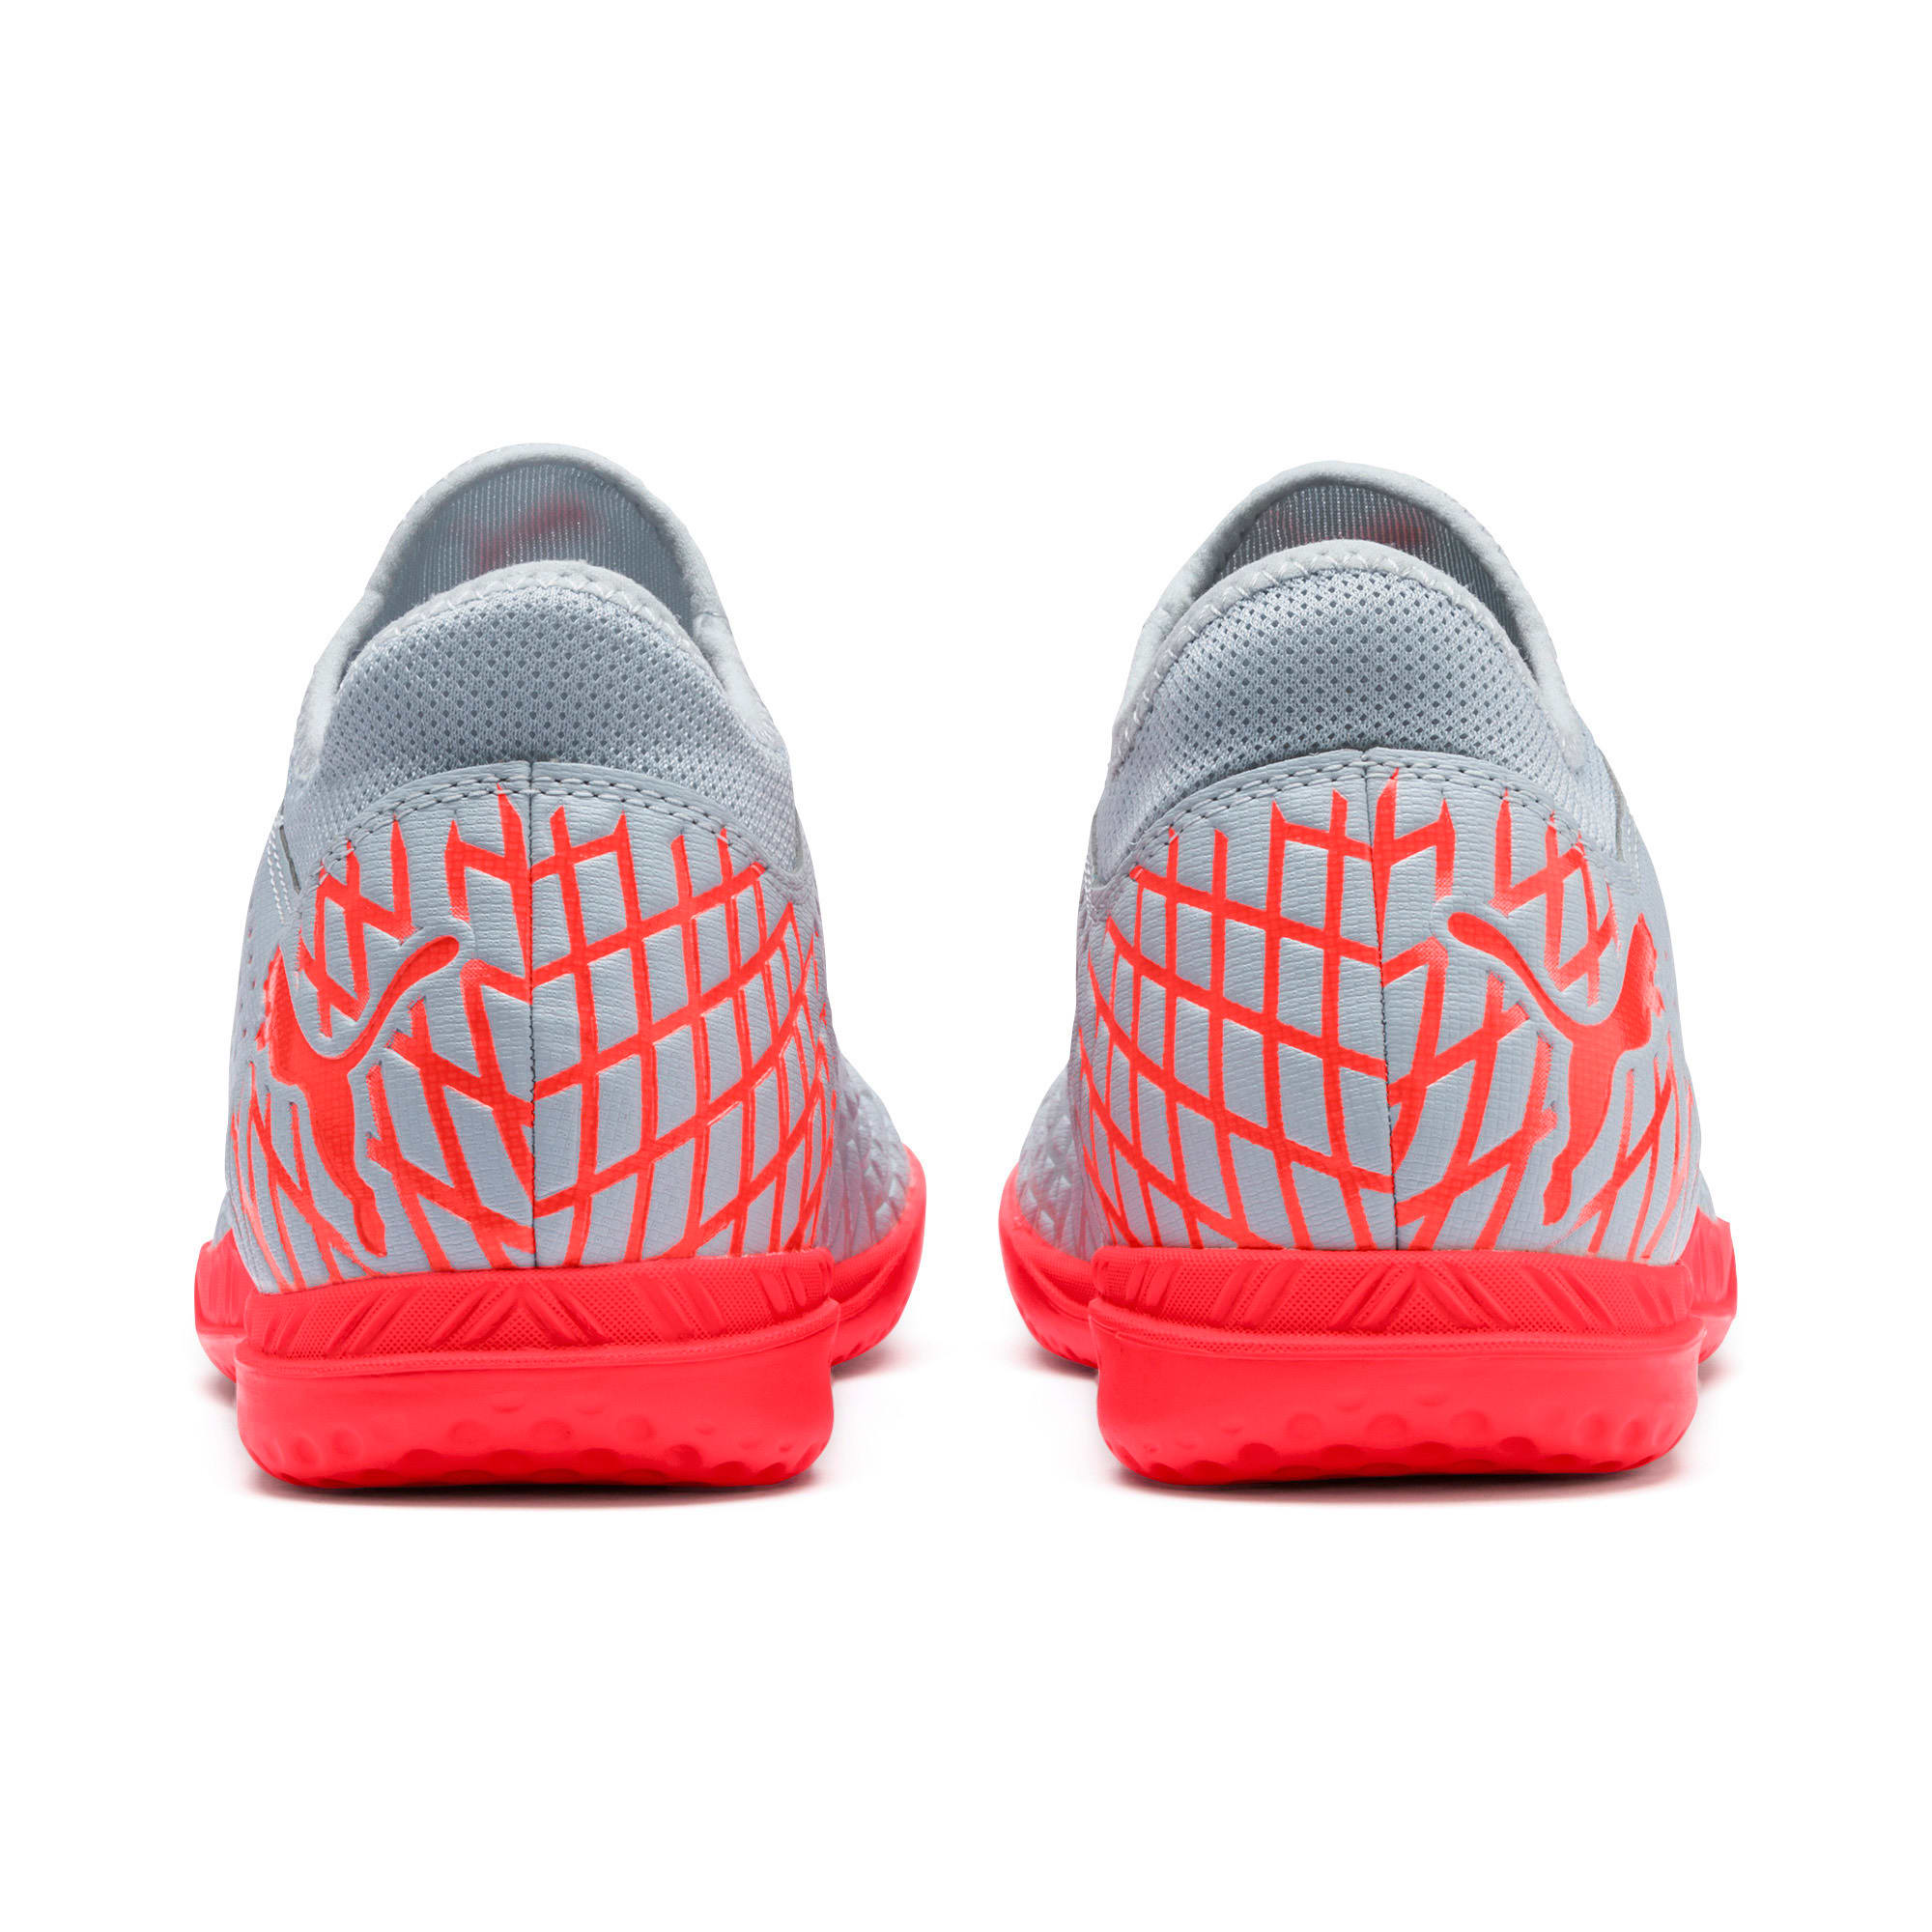 Thumbnail 4 of FUTURE 4.4 IT Men's Soccer Shoes, Glacial Blue-Nrgy Red, medium